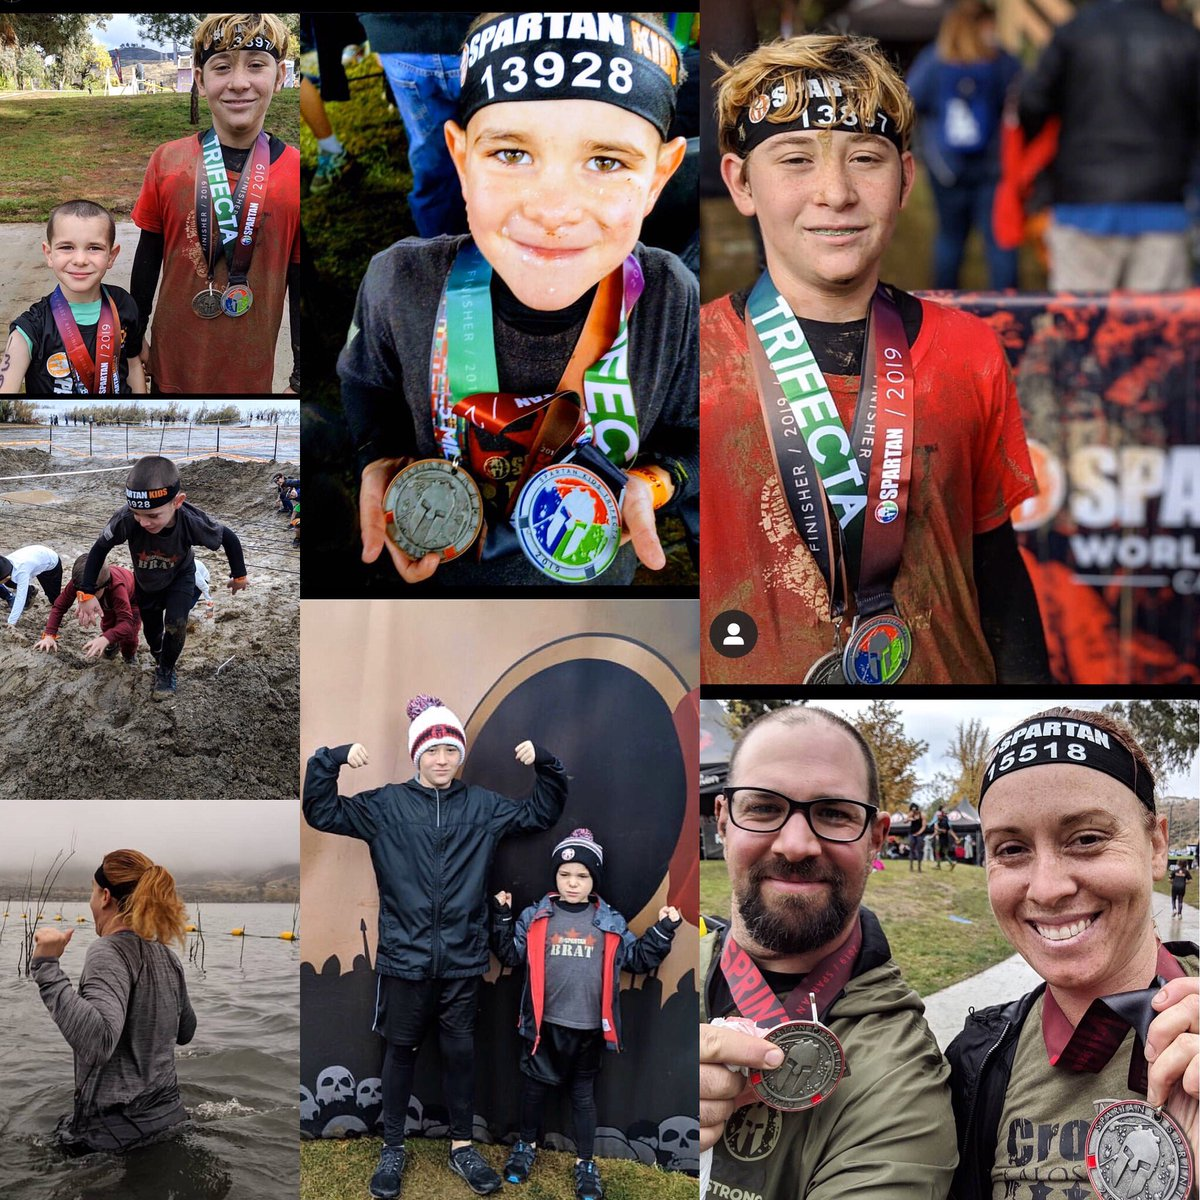 Our very own Phillips Family loving the Spartan Sprint 2019. Train hard and have fun! #CrossFitFamily<br>http://pic.twitter.com/iRwwmQsLFS